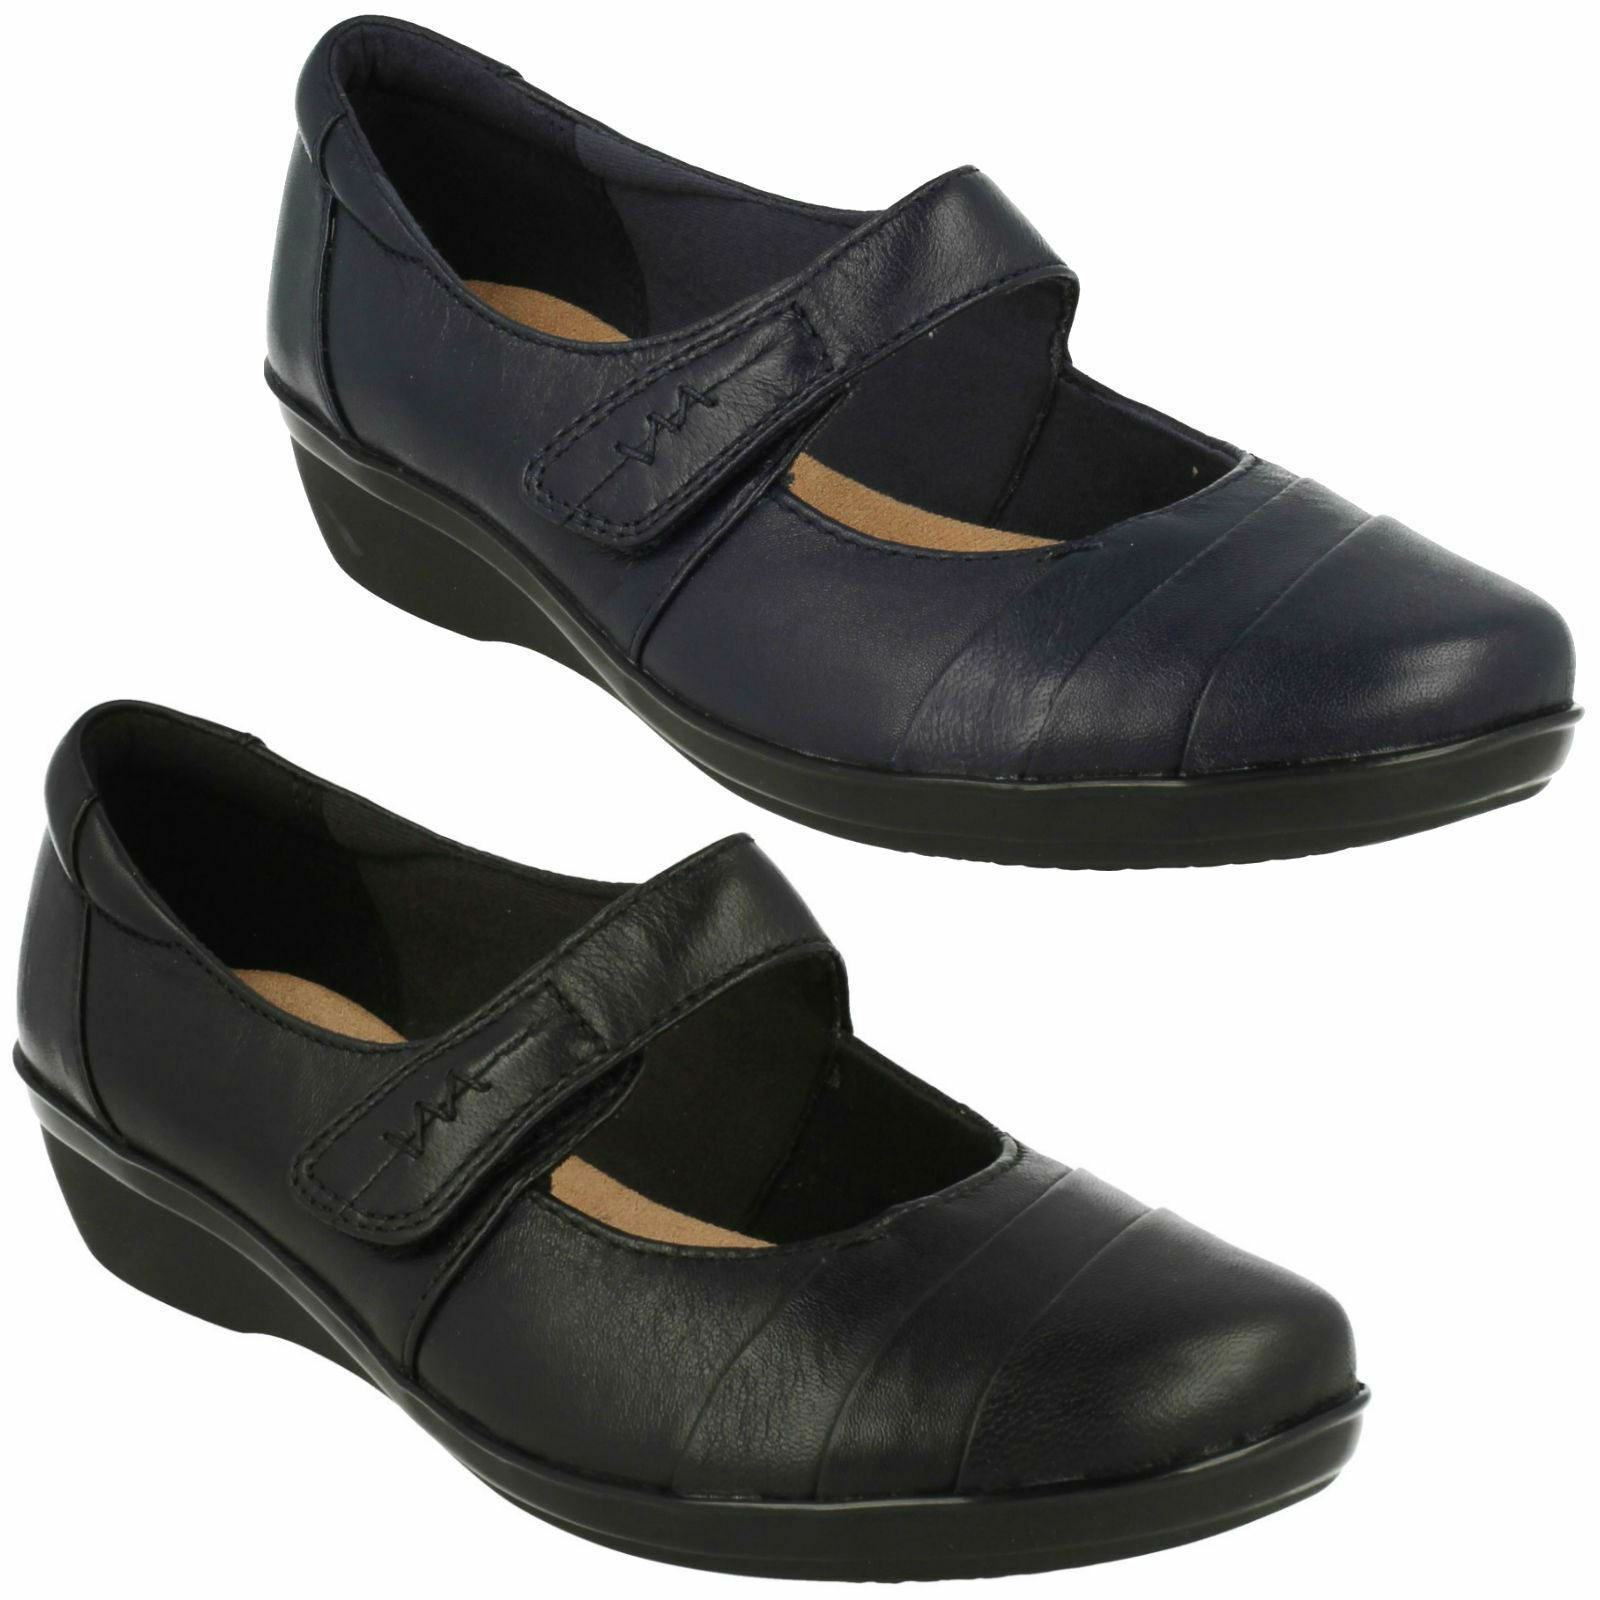 EVERLAY EVERLAY EVERLAY KENNON LADIES CLARKS RIPTAPE STRAP MARY JANE CASUAL WEDGE HEEL Schuhe d4c4f7